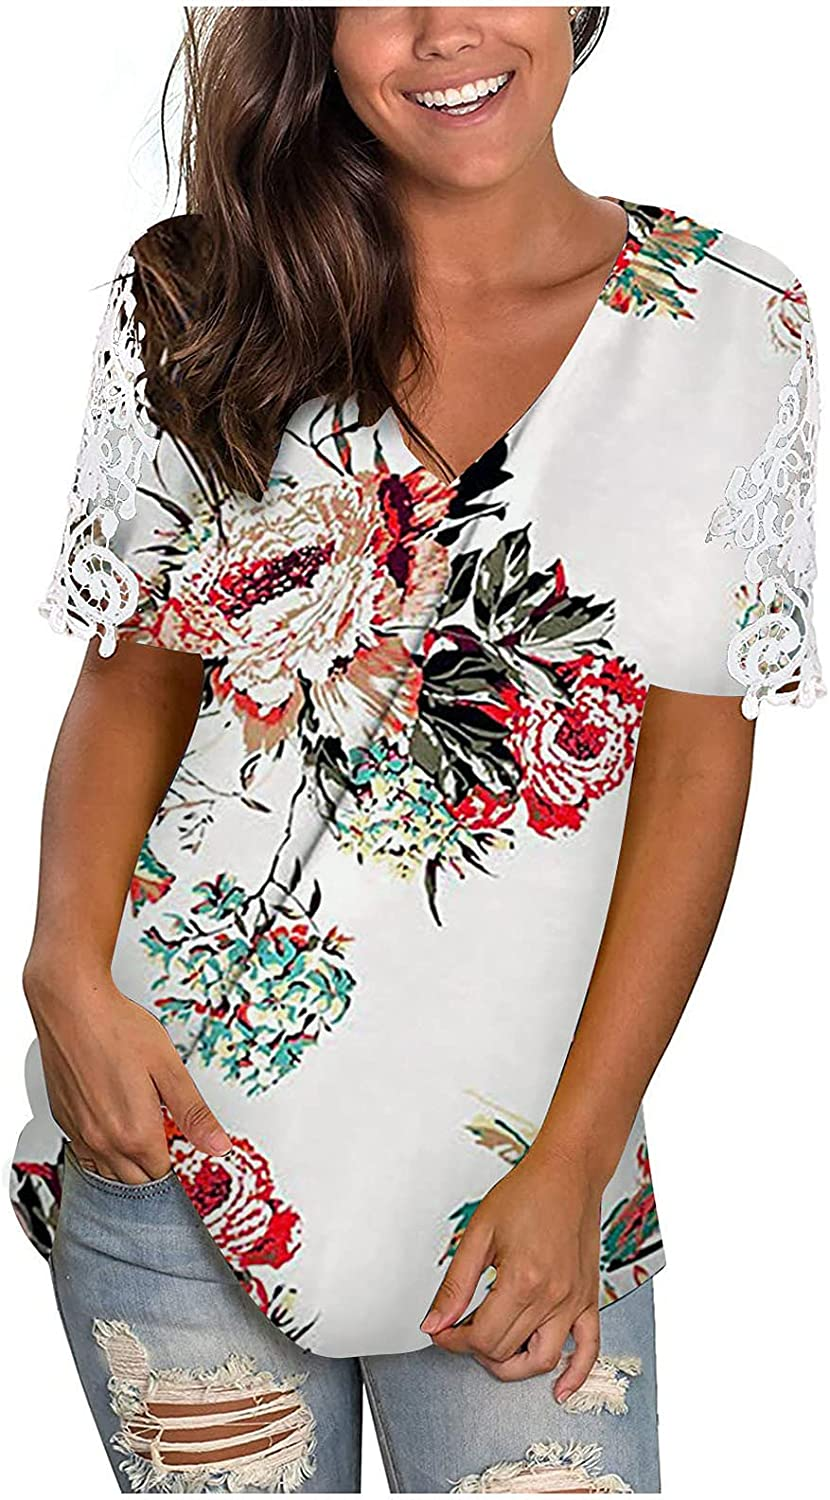 Jaqqra Summer Tops for Women, Womens Short Sleeve Tops Floral Hollow Out V Neck T-Shirts Loose Blouse Tops Tunic Tee